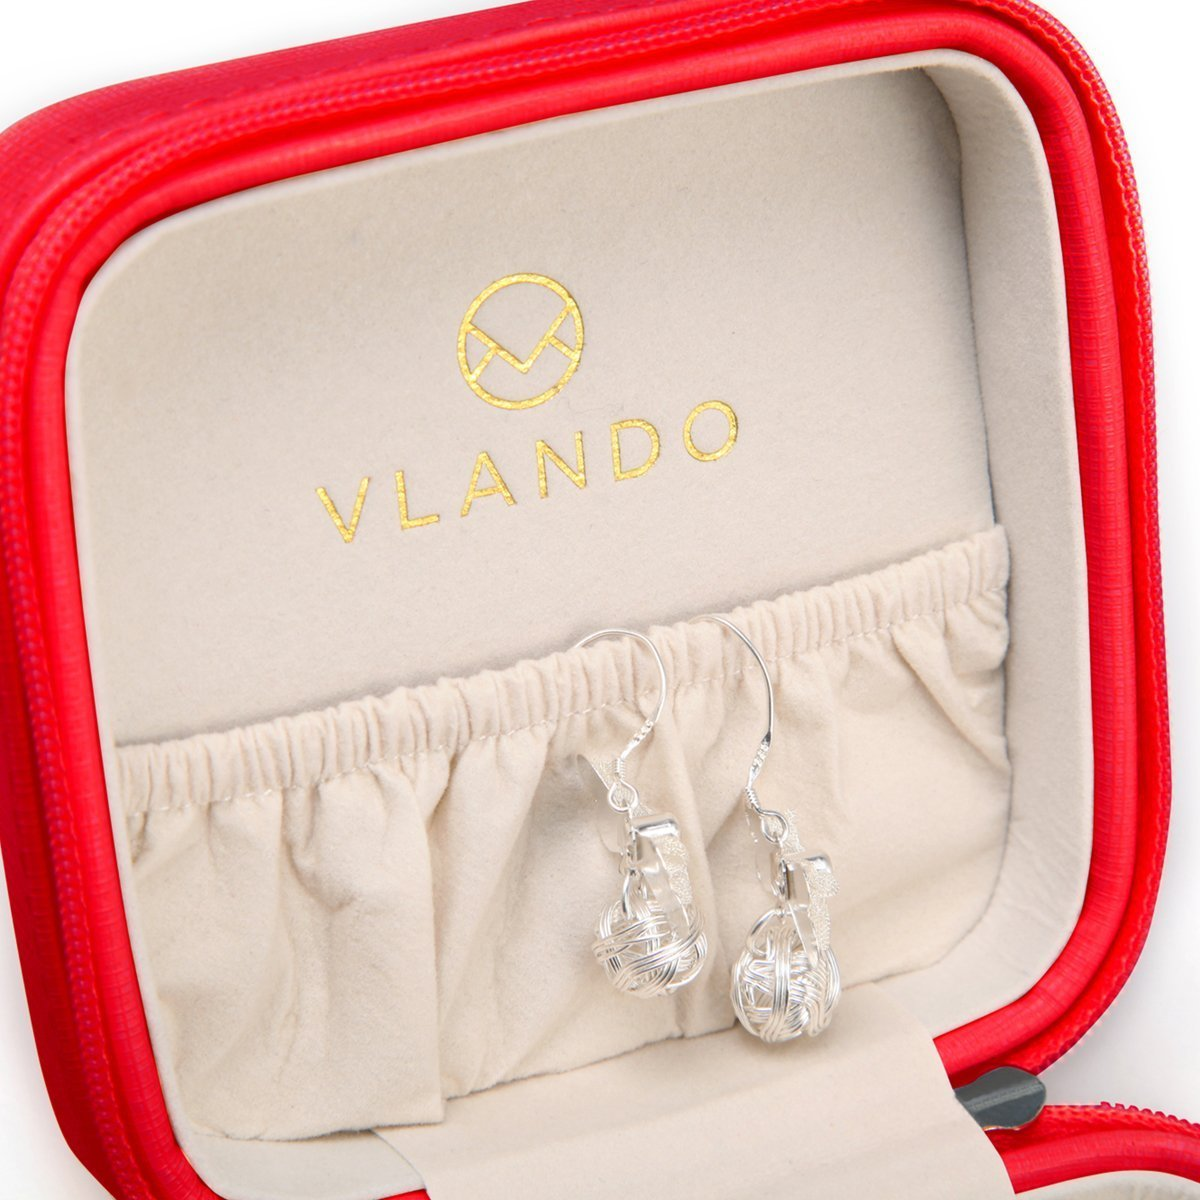 Vlando Small Travel Jewelry Box Organizer Display Storage Case for Rings Earrings Necklace Blue